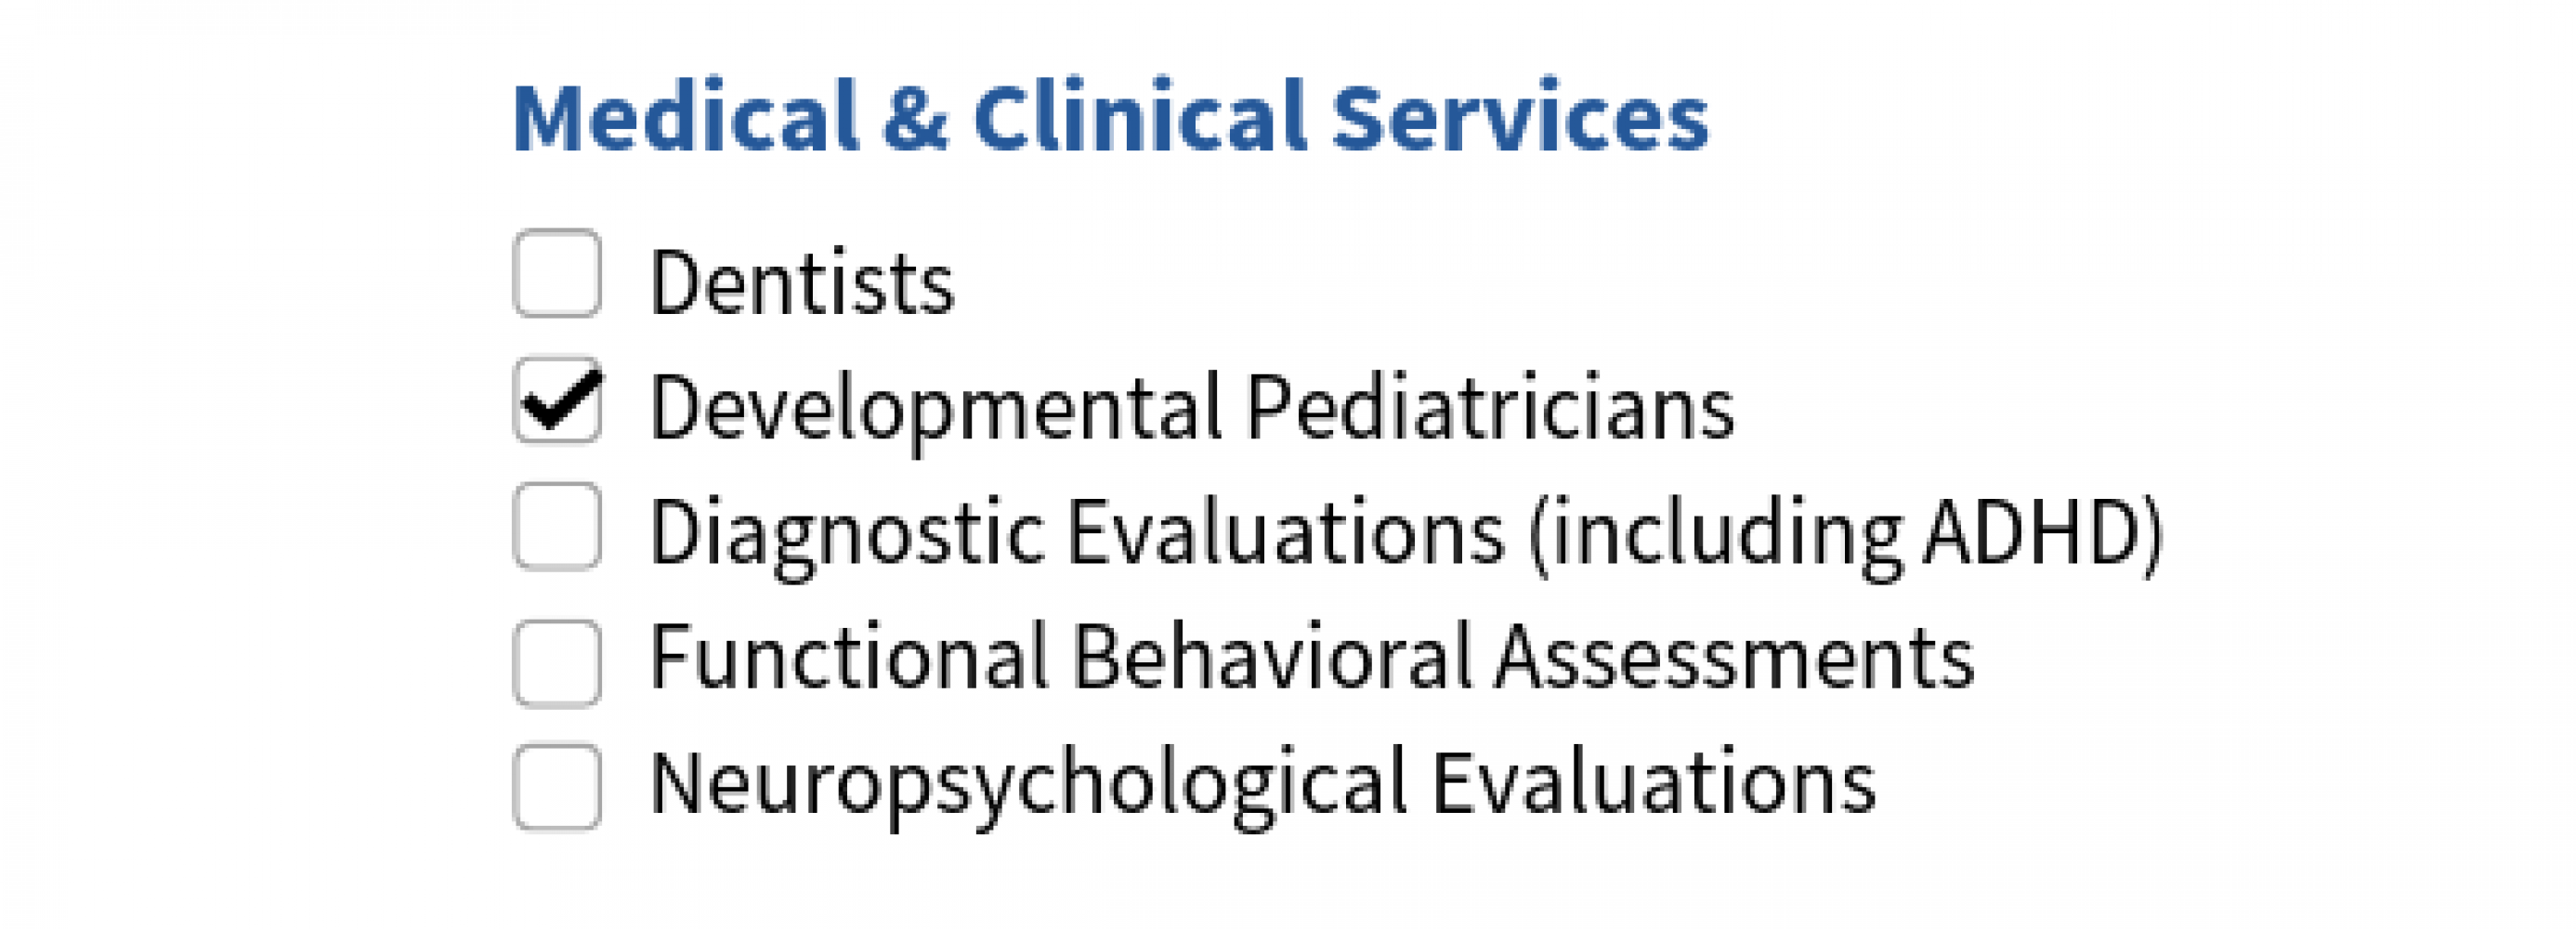 Image is a screenshot from the resource directory that shows the search options for medical and clinical services.